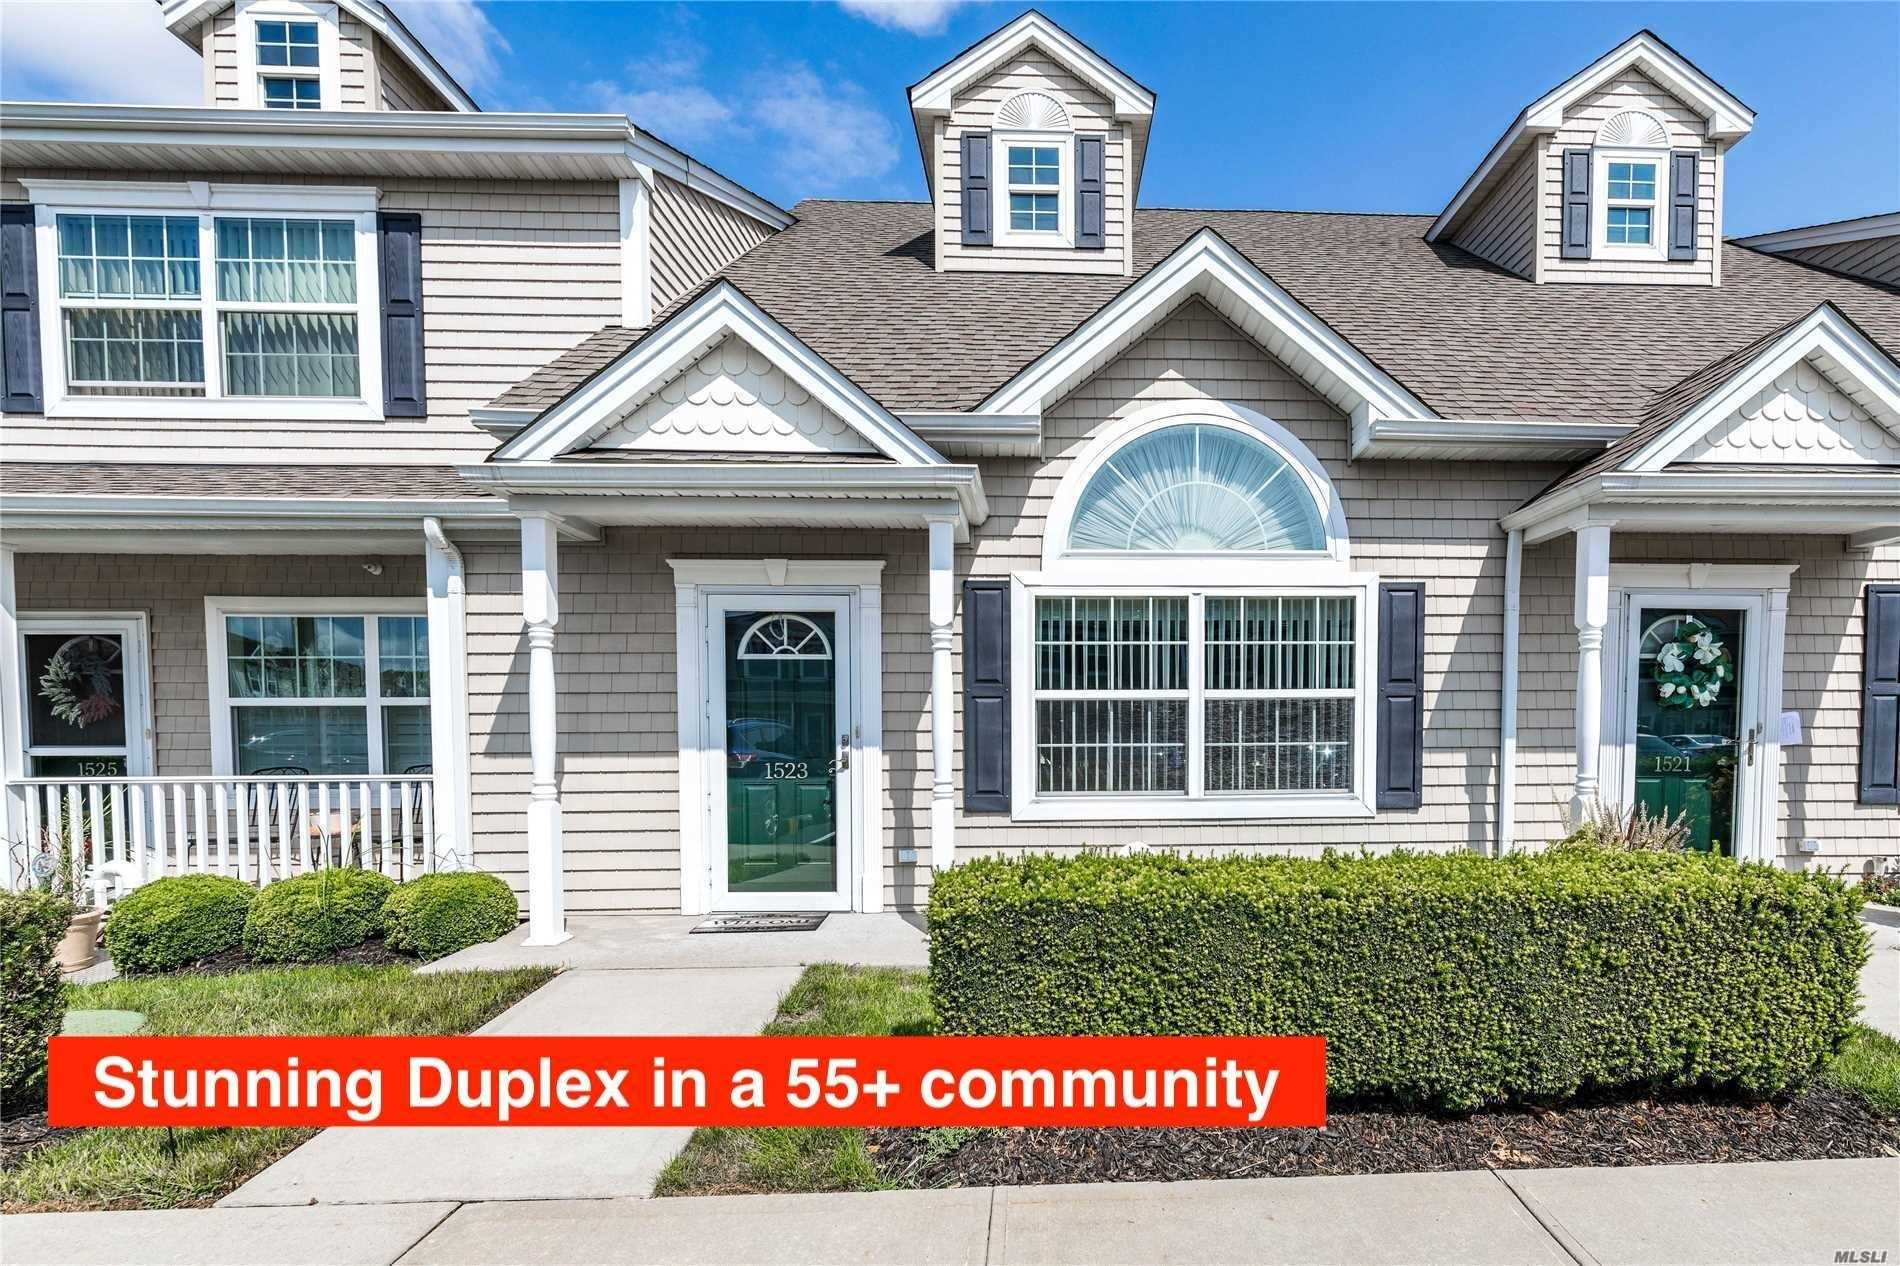 Duplex In Diamond Condition With Over $40K In Upgrades! This 55 & Over Gated Community Boasts Spacious Rooms With Vaulted Ceilings, Kitchen W/ Breakfast Bar, Granite Countertops And Stainless Appliances. Washer/ Dryer In Unit, Top Of The Line Hard Wood Floors And Plenty Of Closets. Chairlift Also Included With Unit. Amenities Include Clubhouse W/ Heated Pool, Gym, Party And Recreation Rooms. Unit Includes 2 Parking Spots.